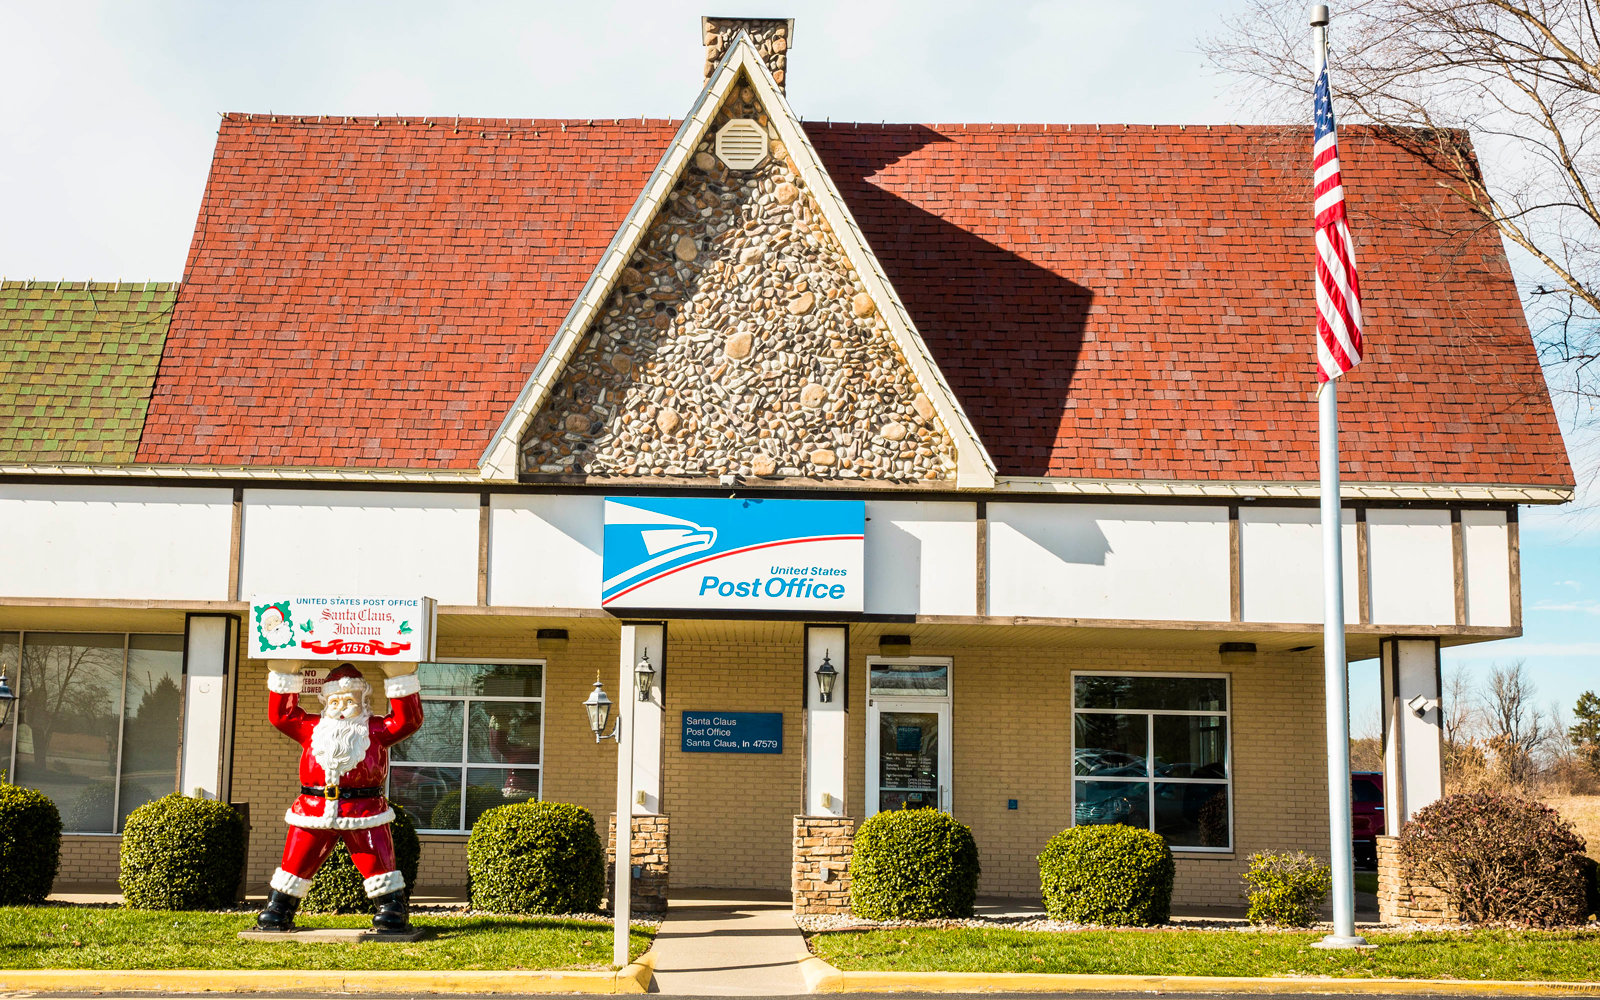 Post office in Santa Claus, Indiana